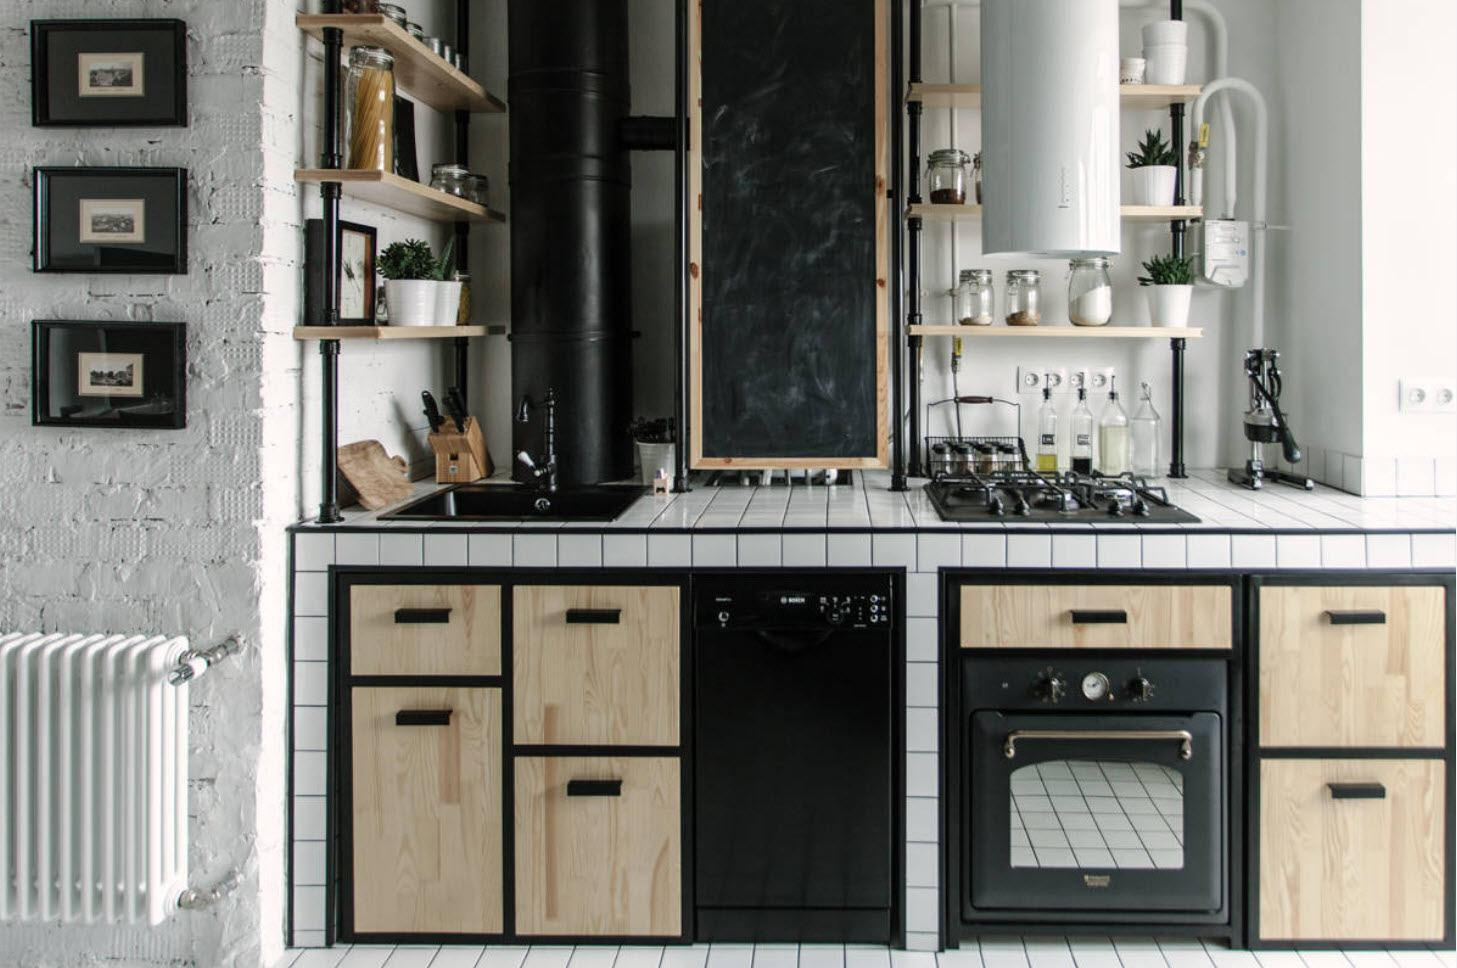 Another vintage kitchen example